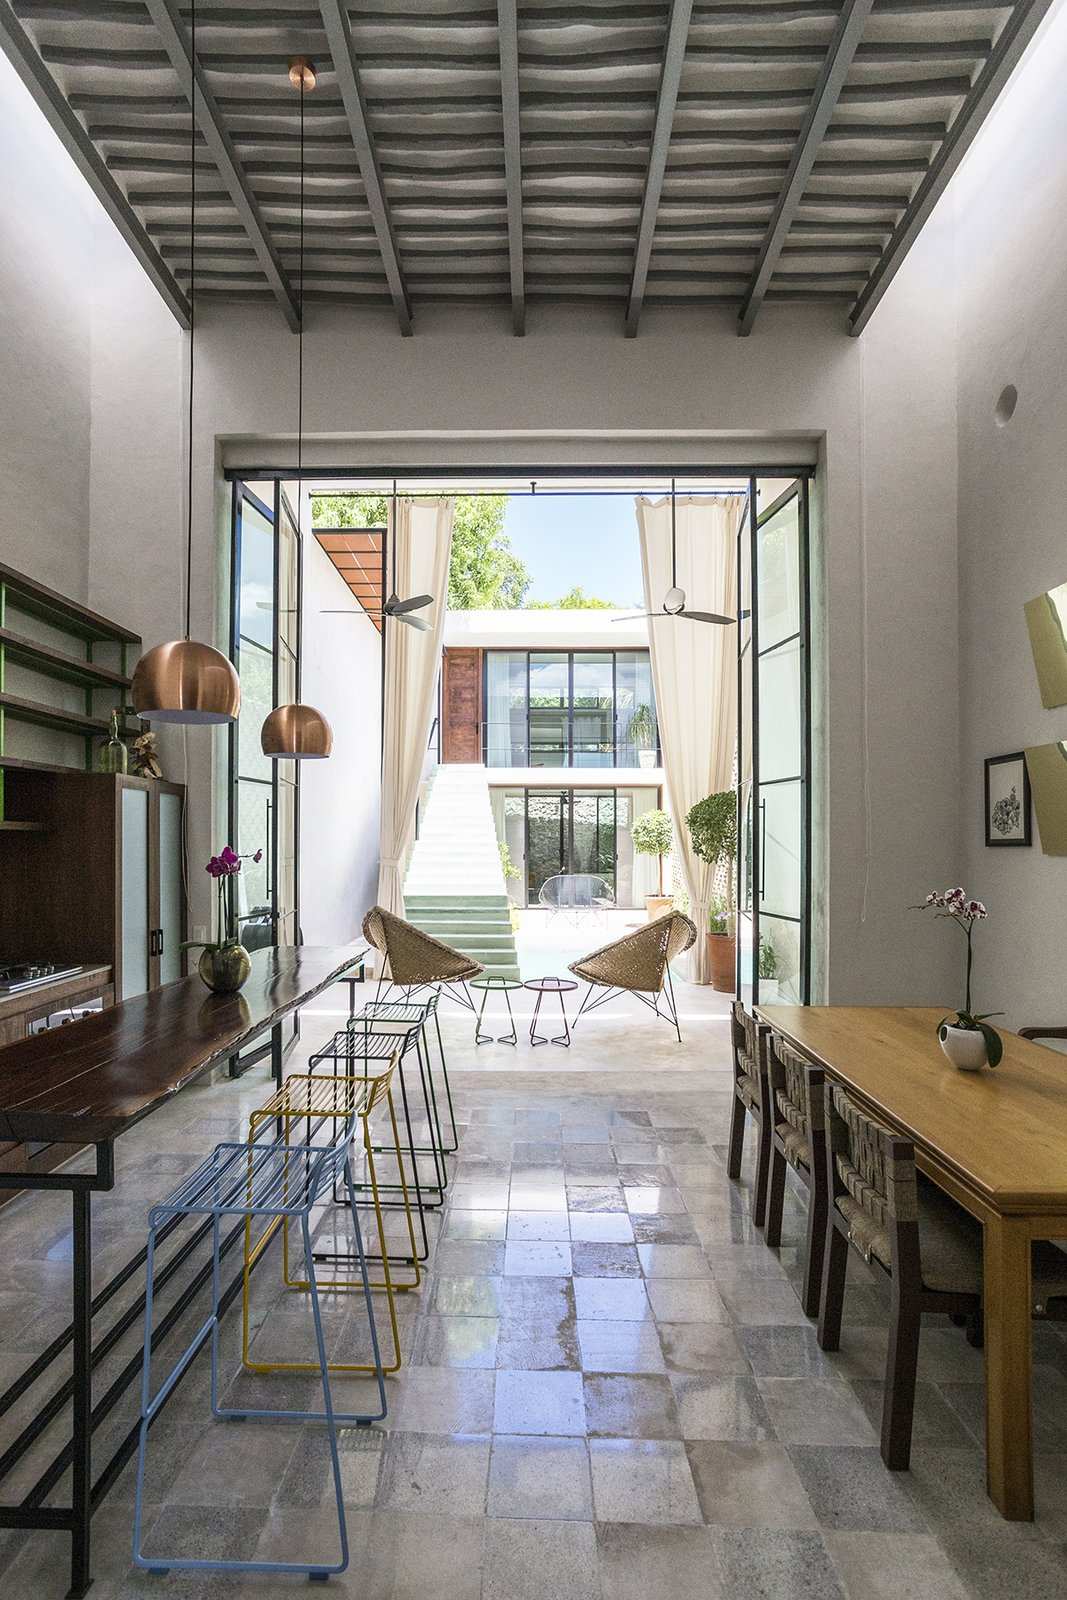 The transistion from Outside-Inside- is gradual, same concept to the transition from the old struture to the contemporary  architecture. Tagged: Dining Room, Pendant Lighting, Table, Chair, and Bench.  Lemon Tree House by Taller Estilo Arquitectura S de R.L de C.V